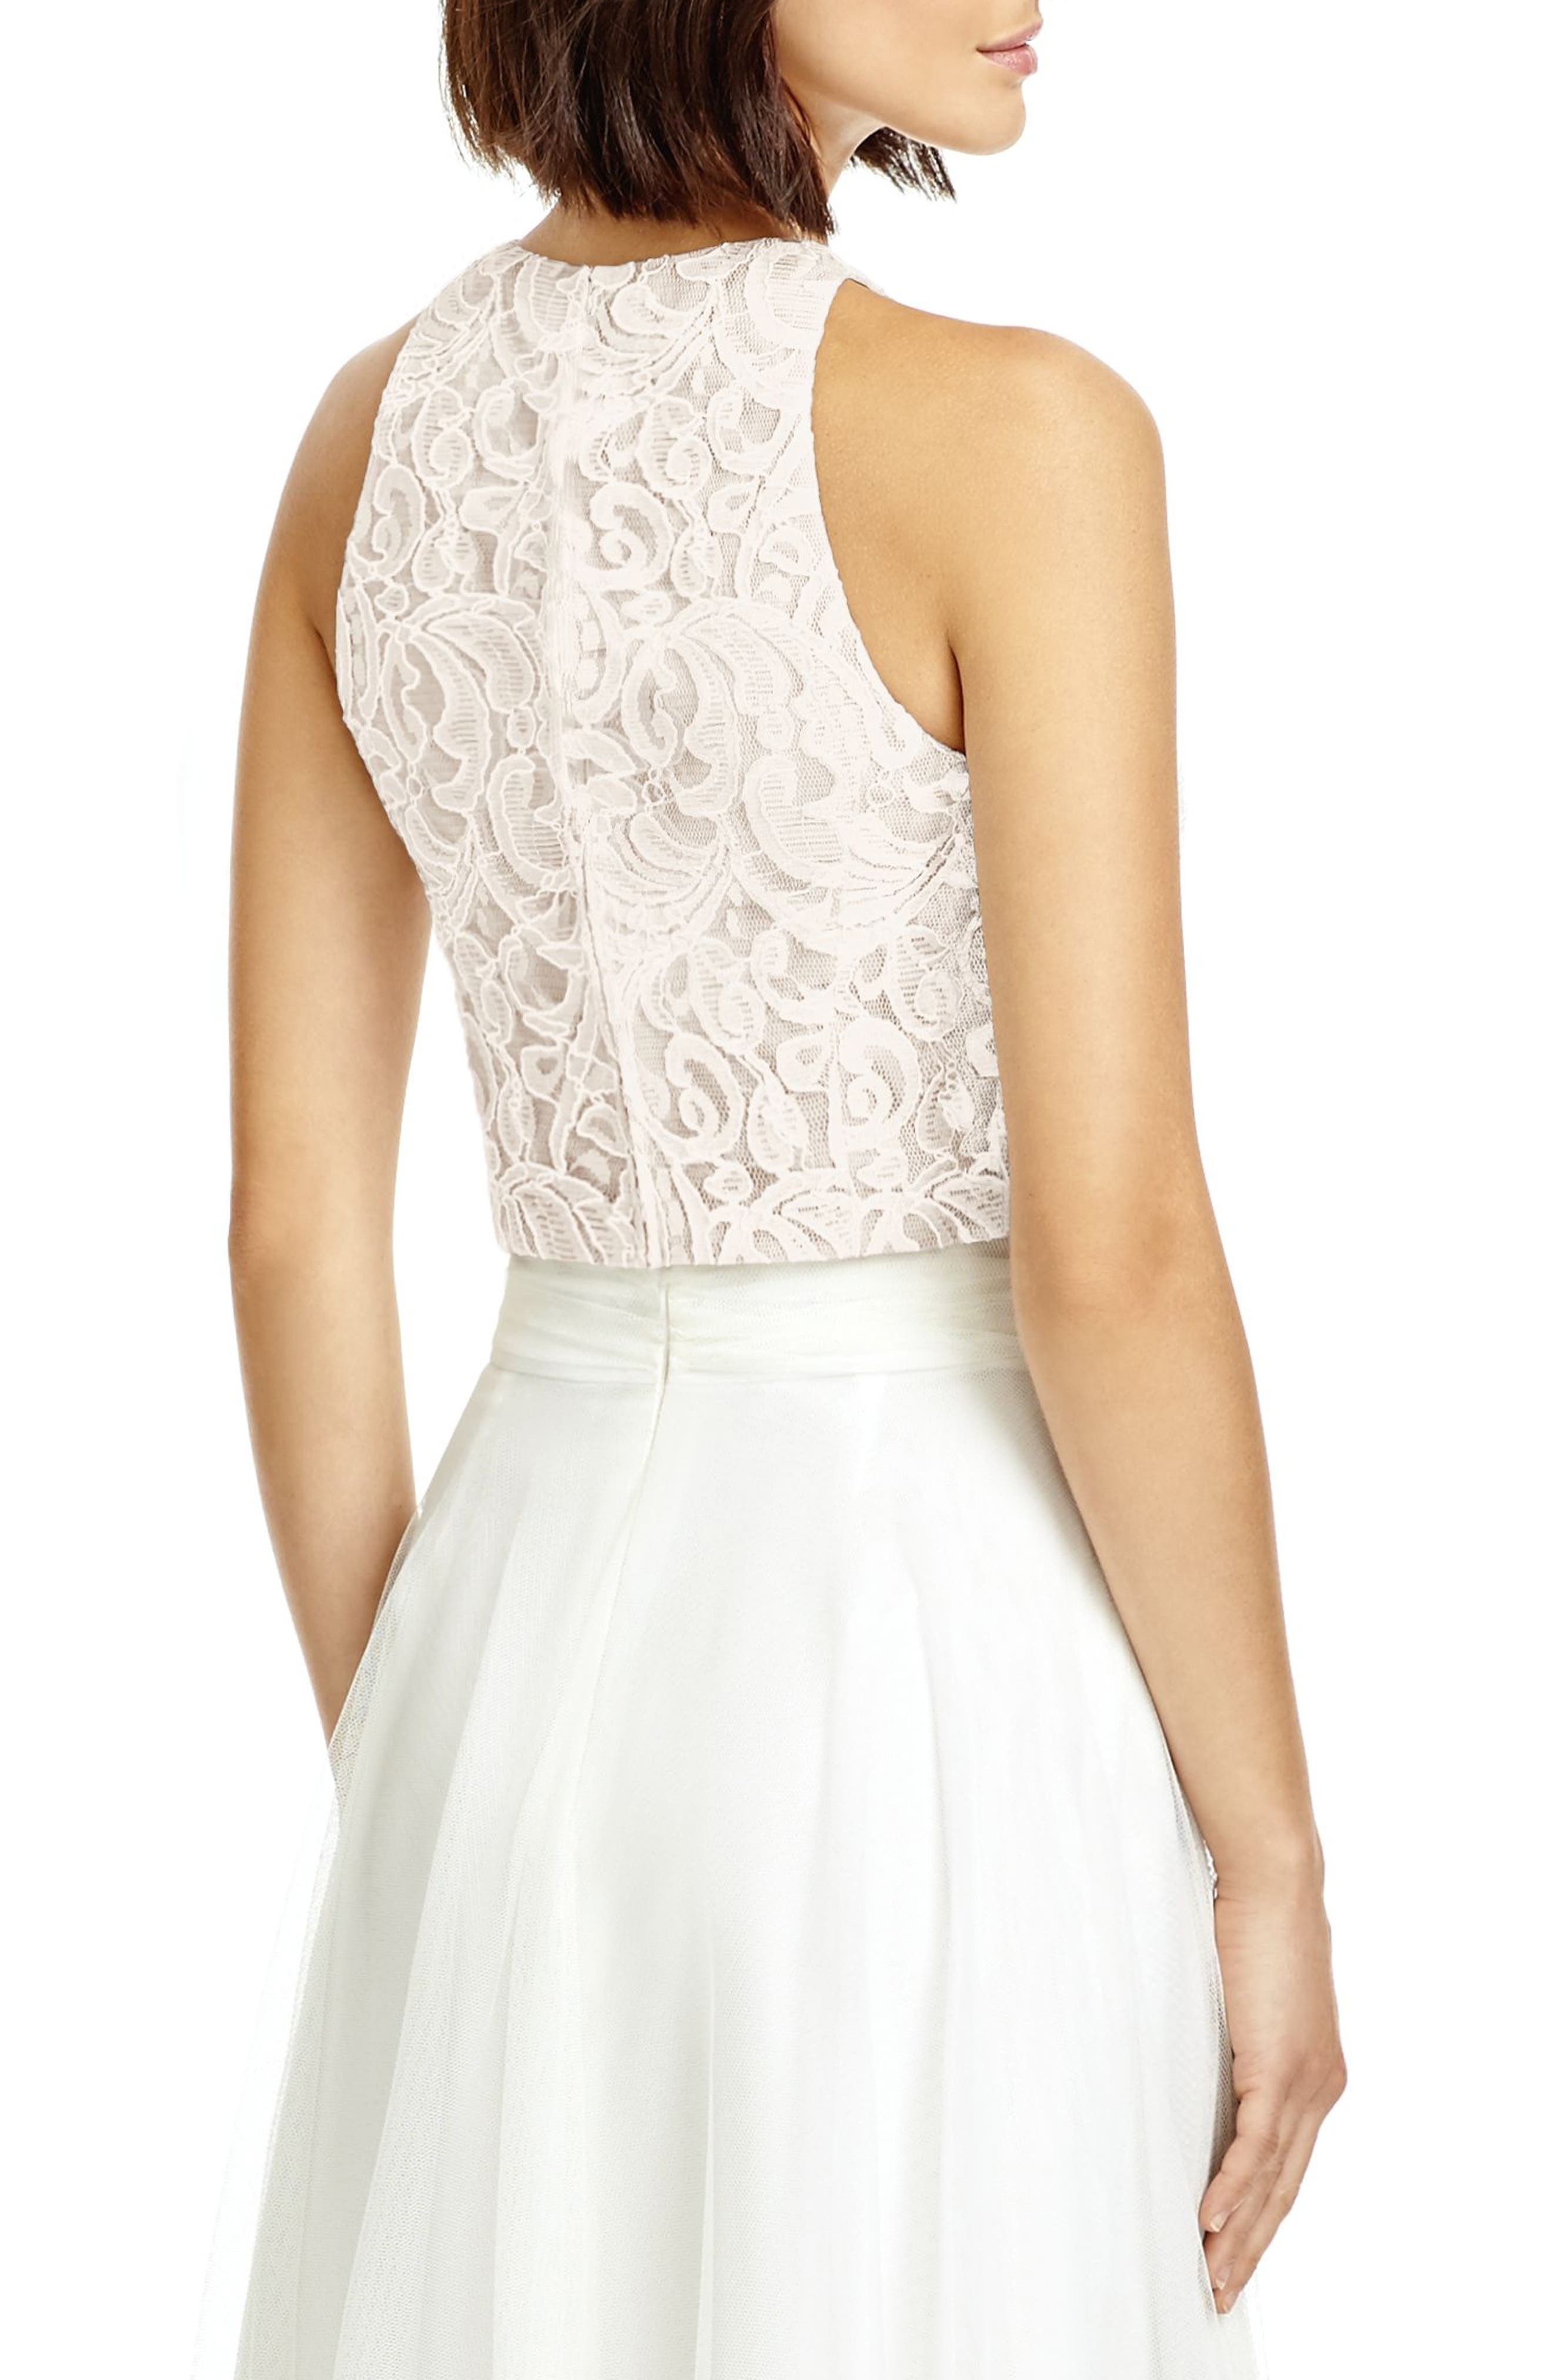 Lace Halter Style Crop Top,                             Alternate thumbnail 3, color,                             IVORY LACE/ TOPAZ/ IVORY